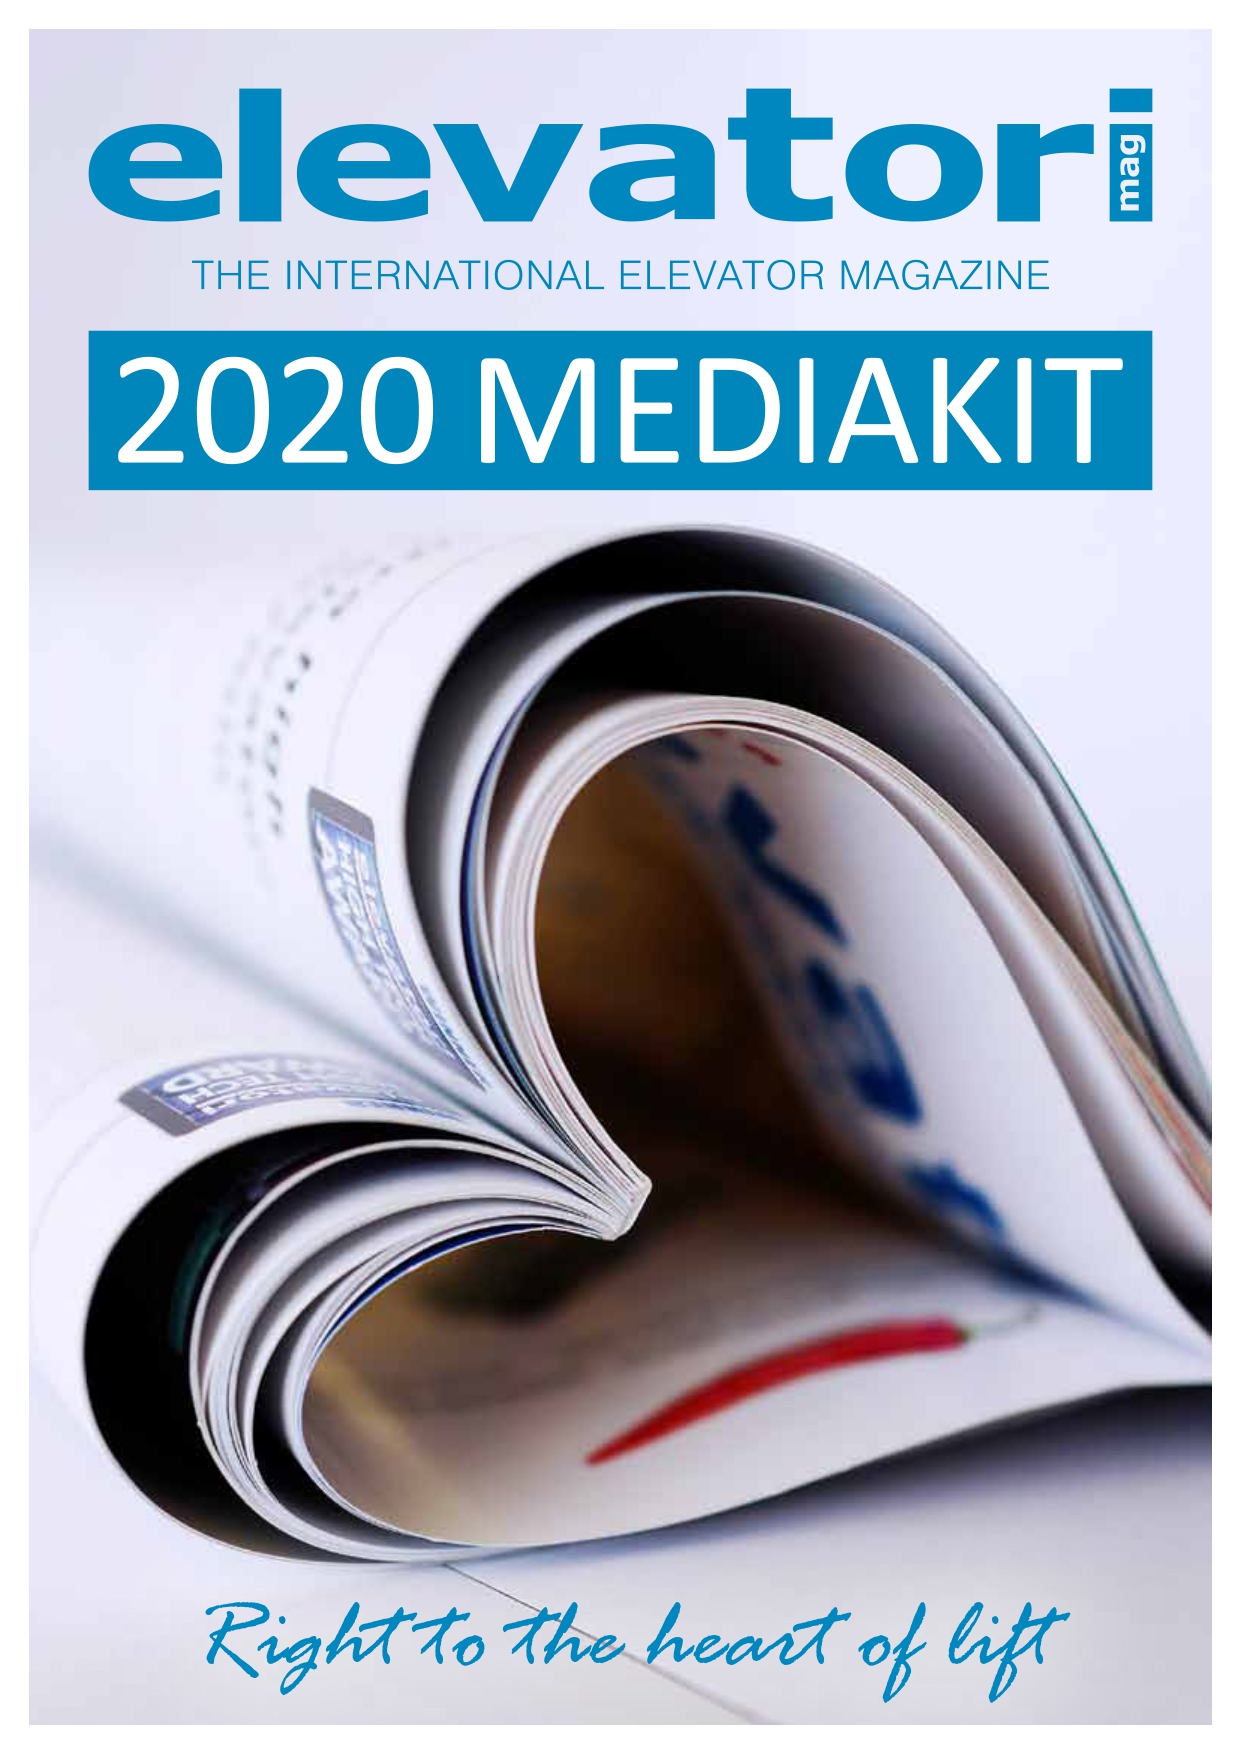 elevatori-mediakit-2020_pages-to-jpg-0001